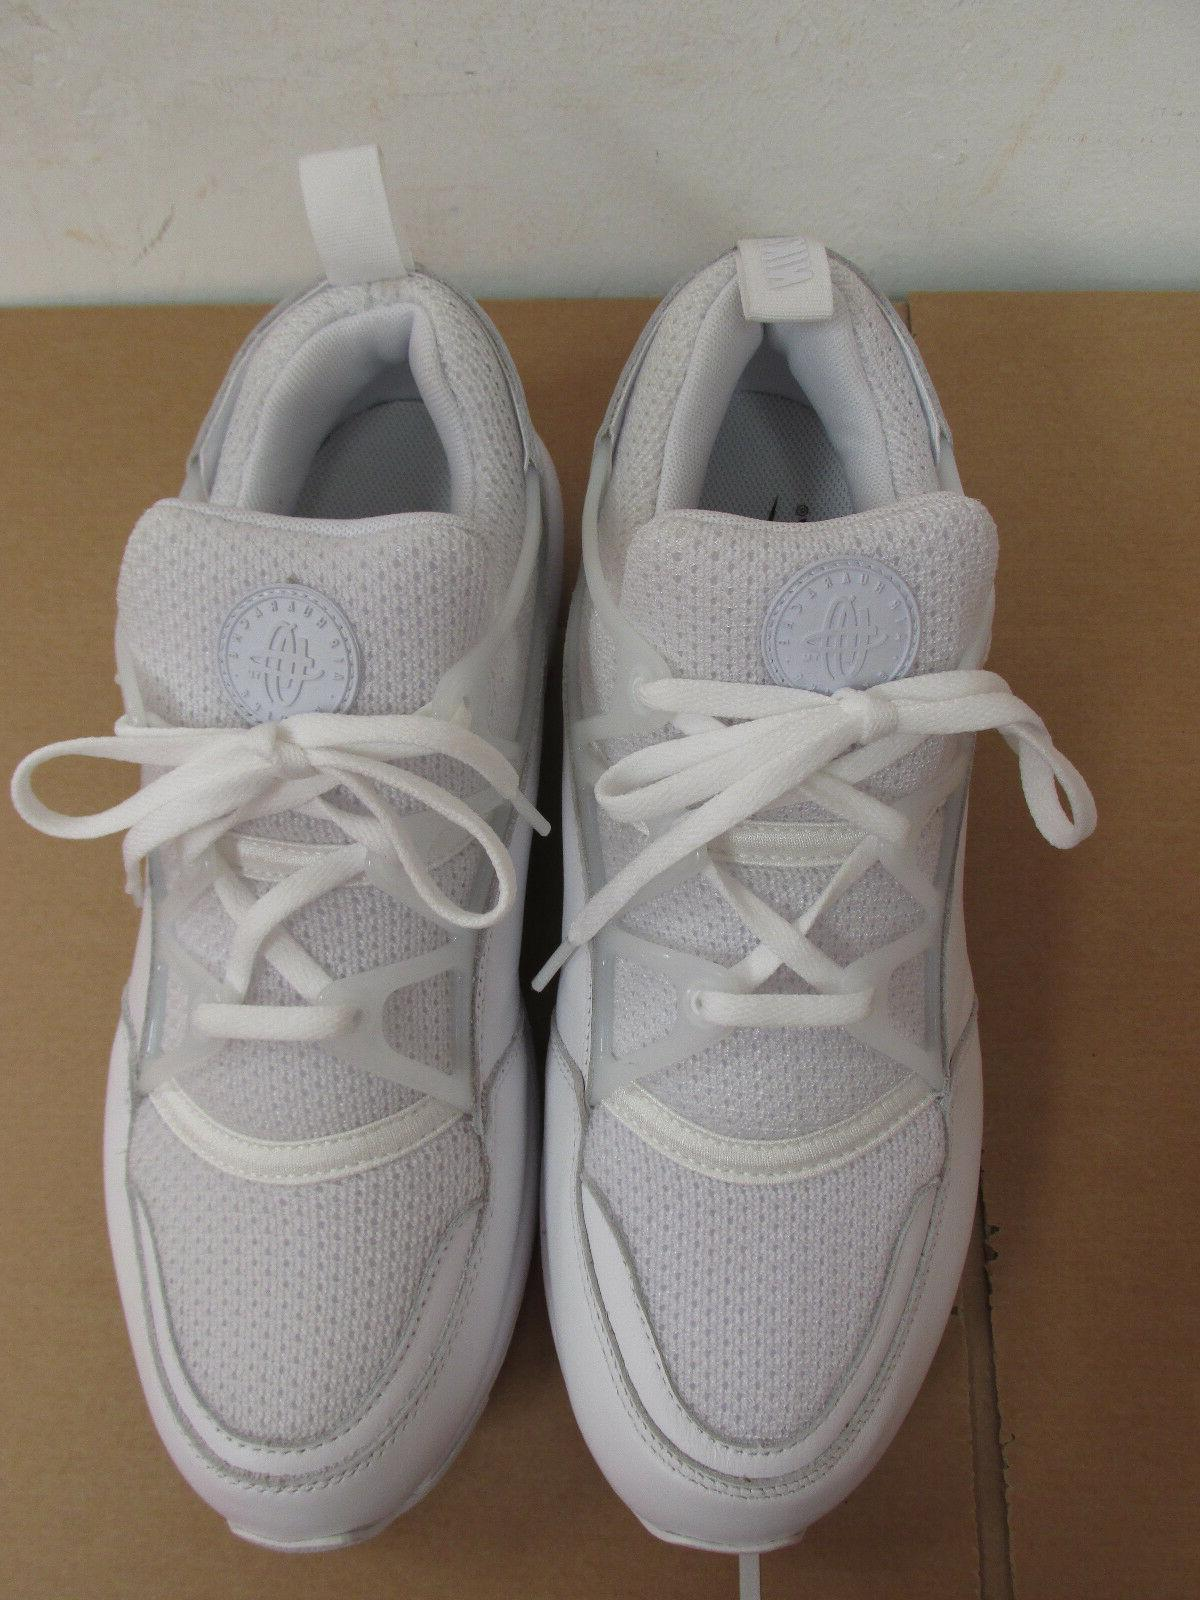 Nike 111 Trainers sneakers shoes CLEARANCE